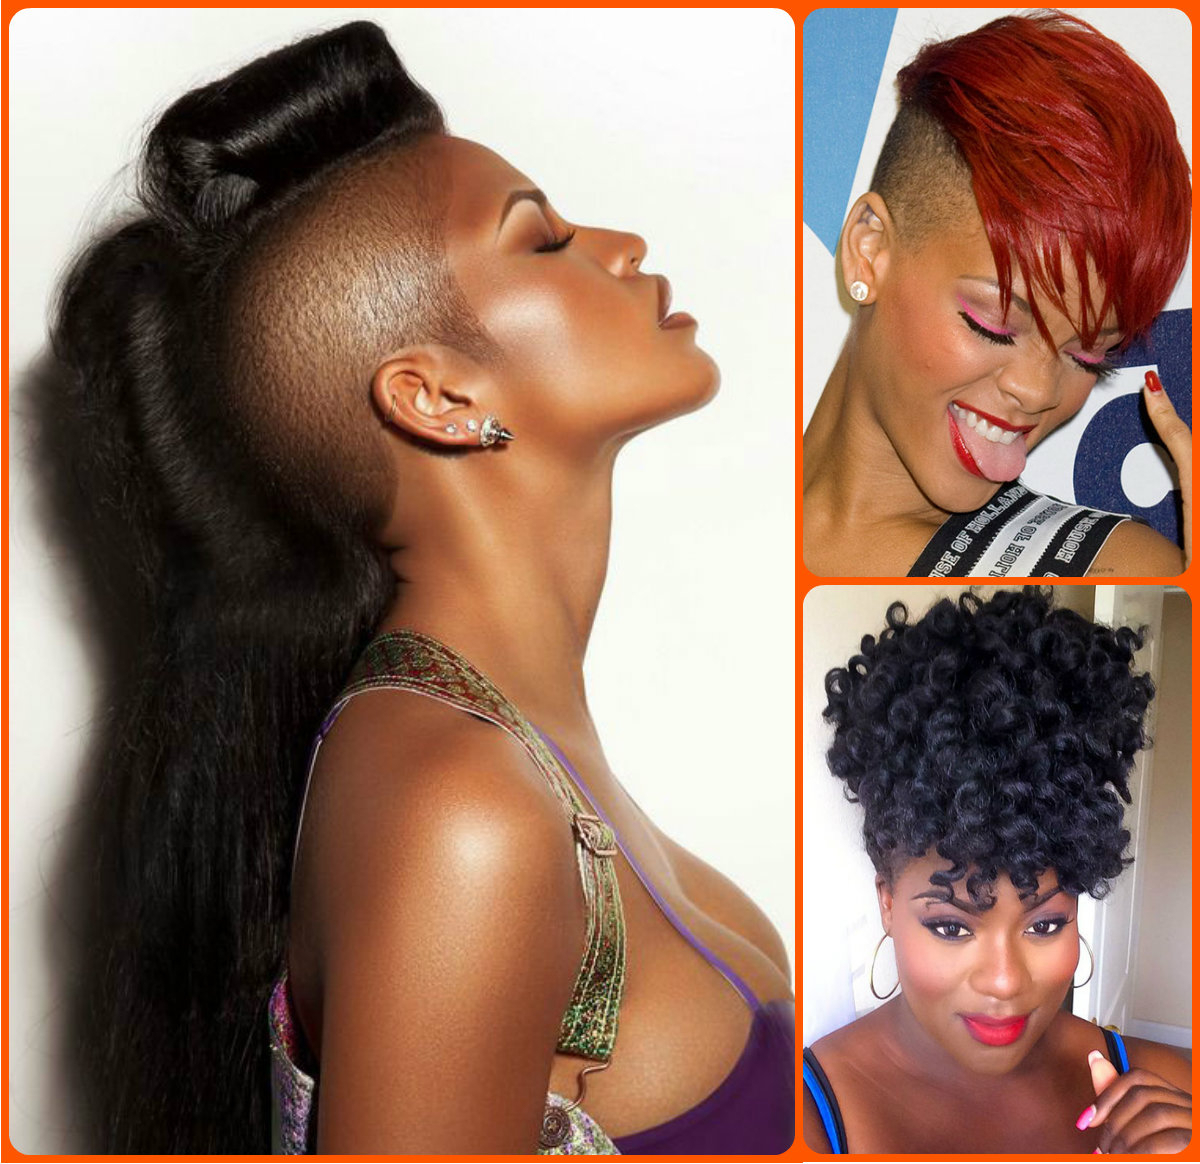 Hairstyles 2017 Intended For Recent Natural Curls Mohawk Hairstyles (View 10 of 20)